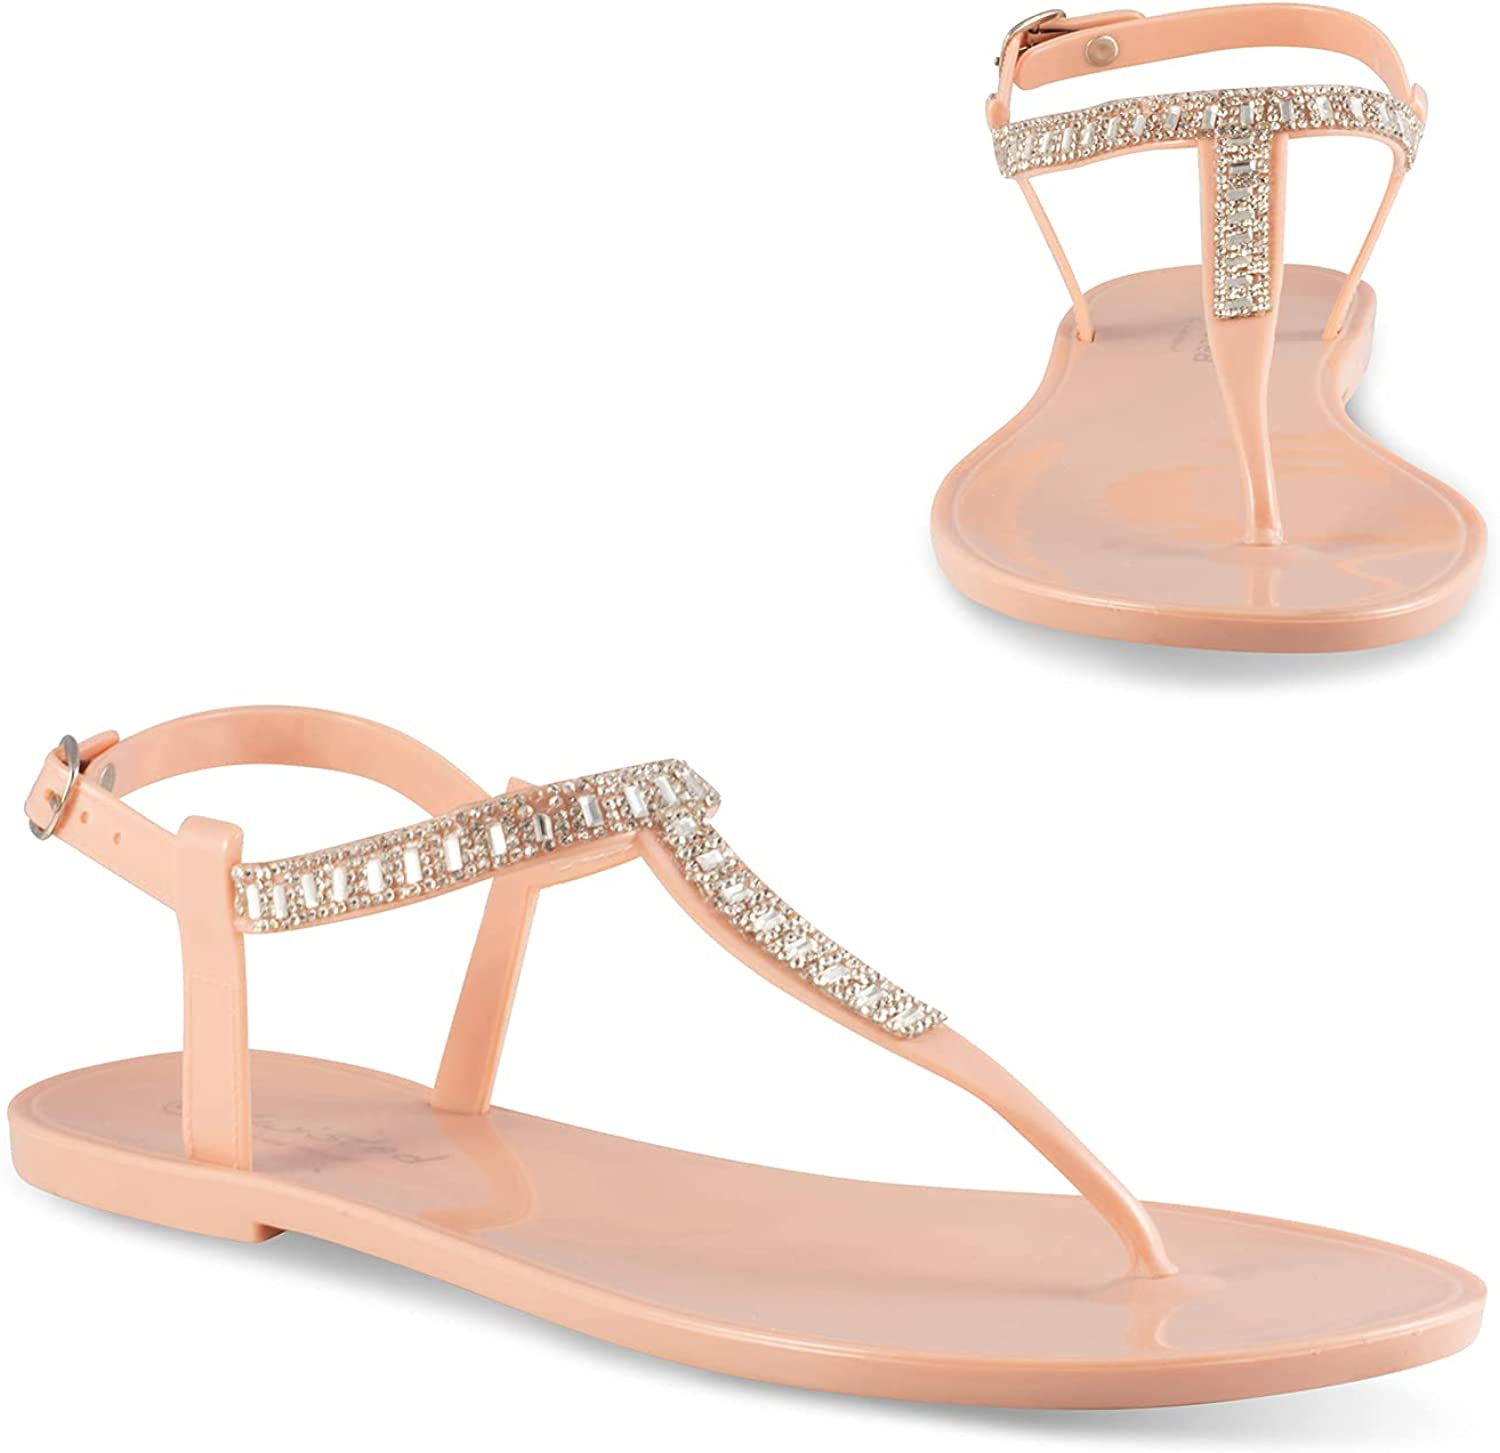 Twisted 40% OFF Cheap Sale Justina 67% OFF of fixed price Women's Sandals T-Strap Rhinestone Studded